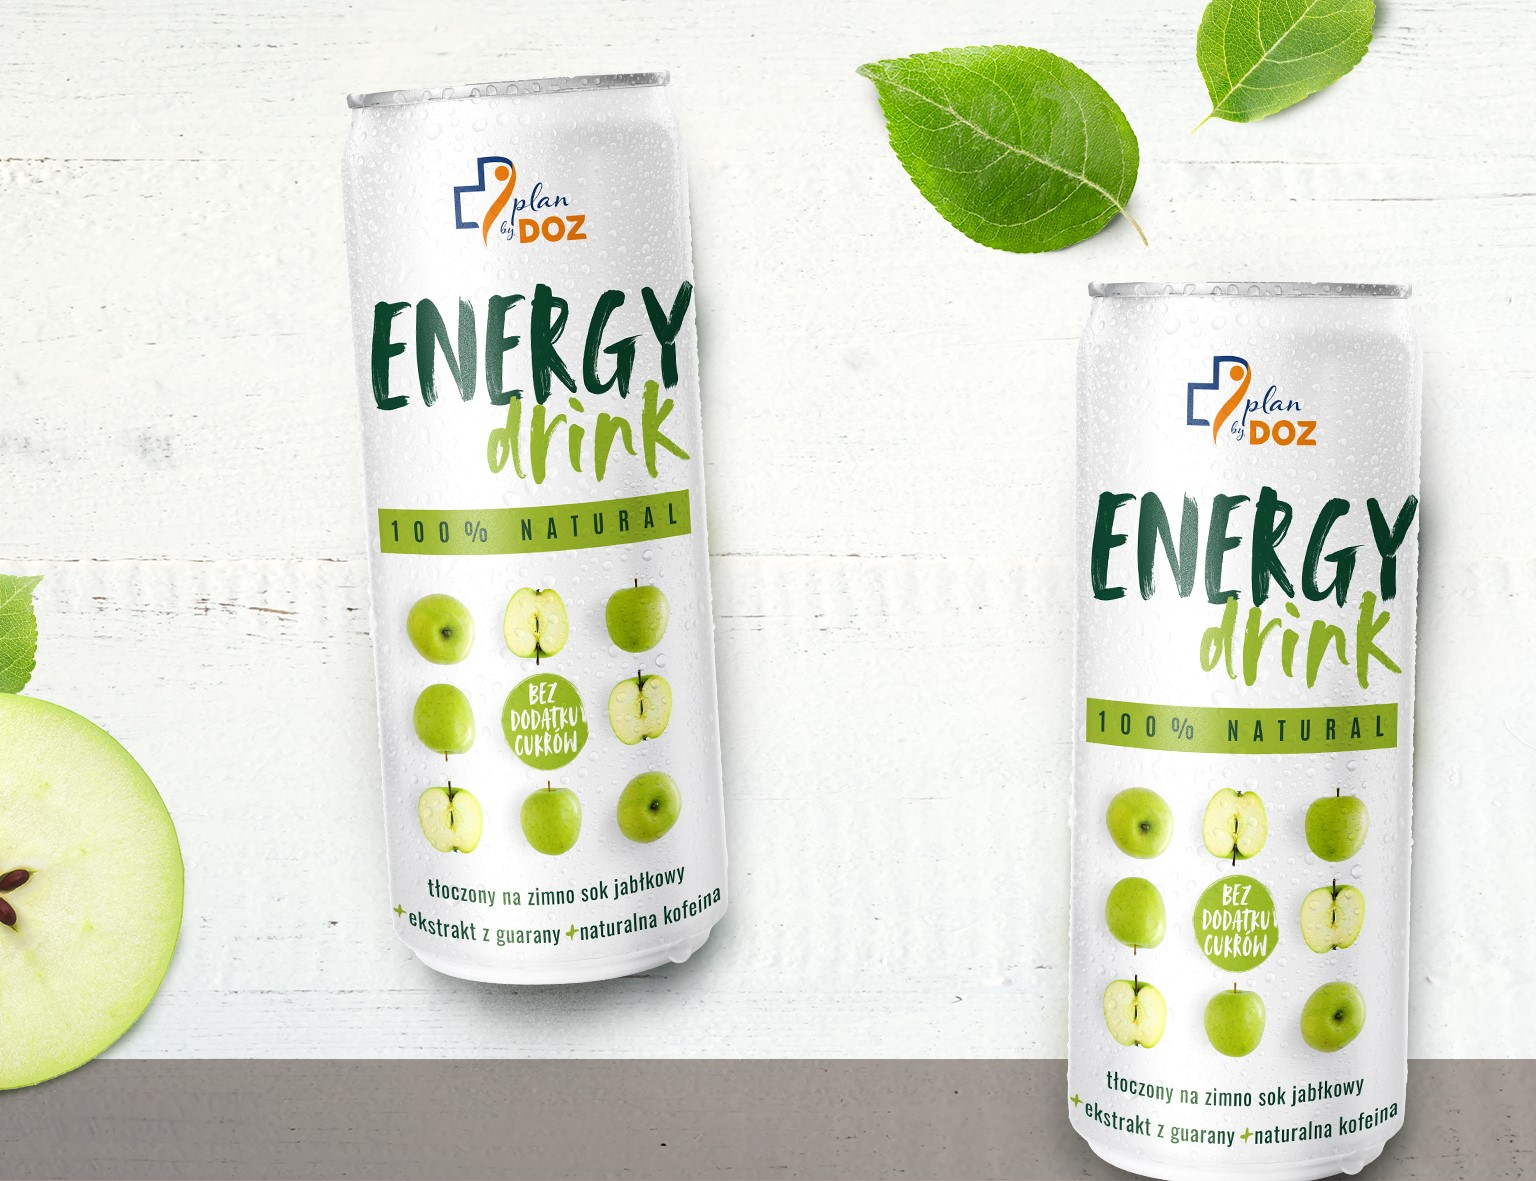 PLAN by DOZ ENERGY DRINK 100% ANTURAL